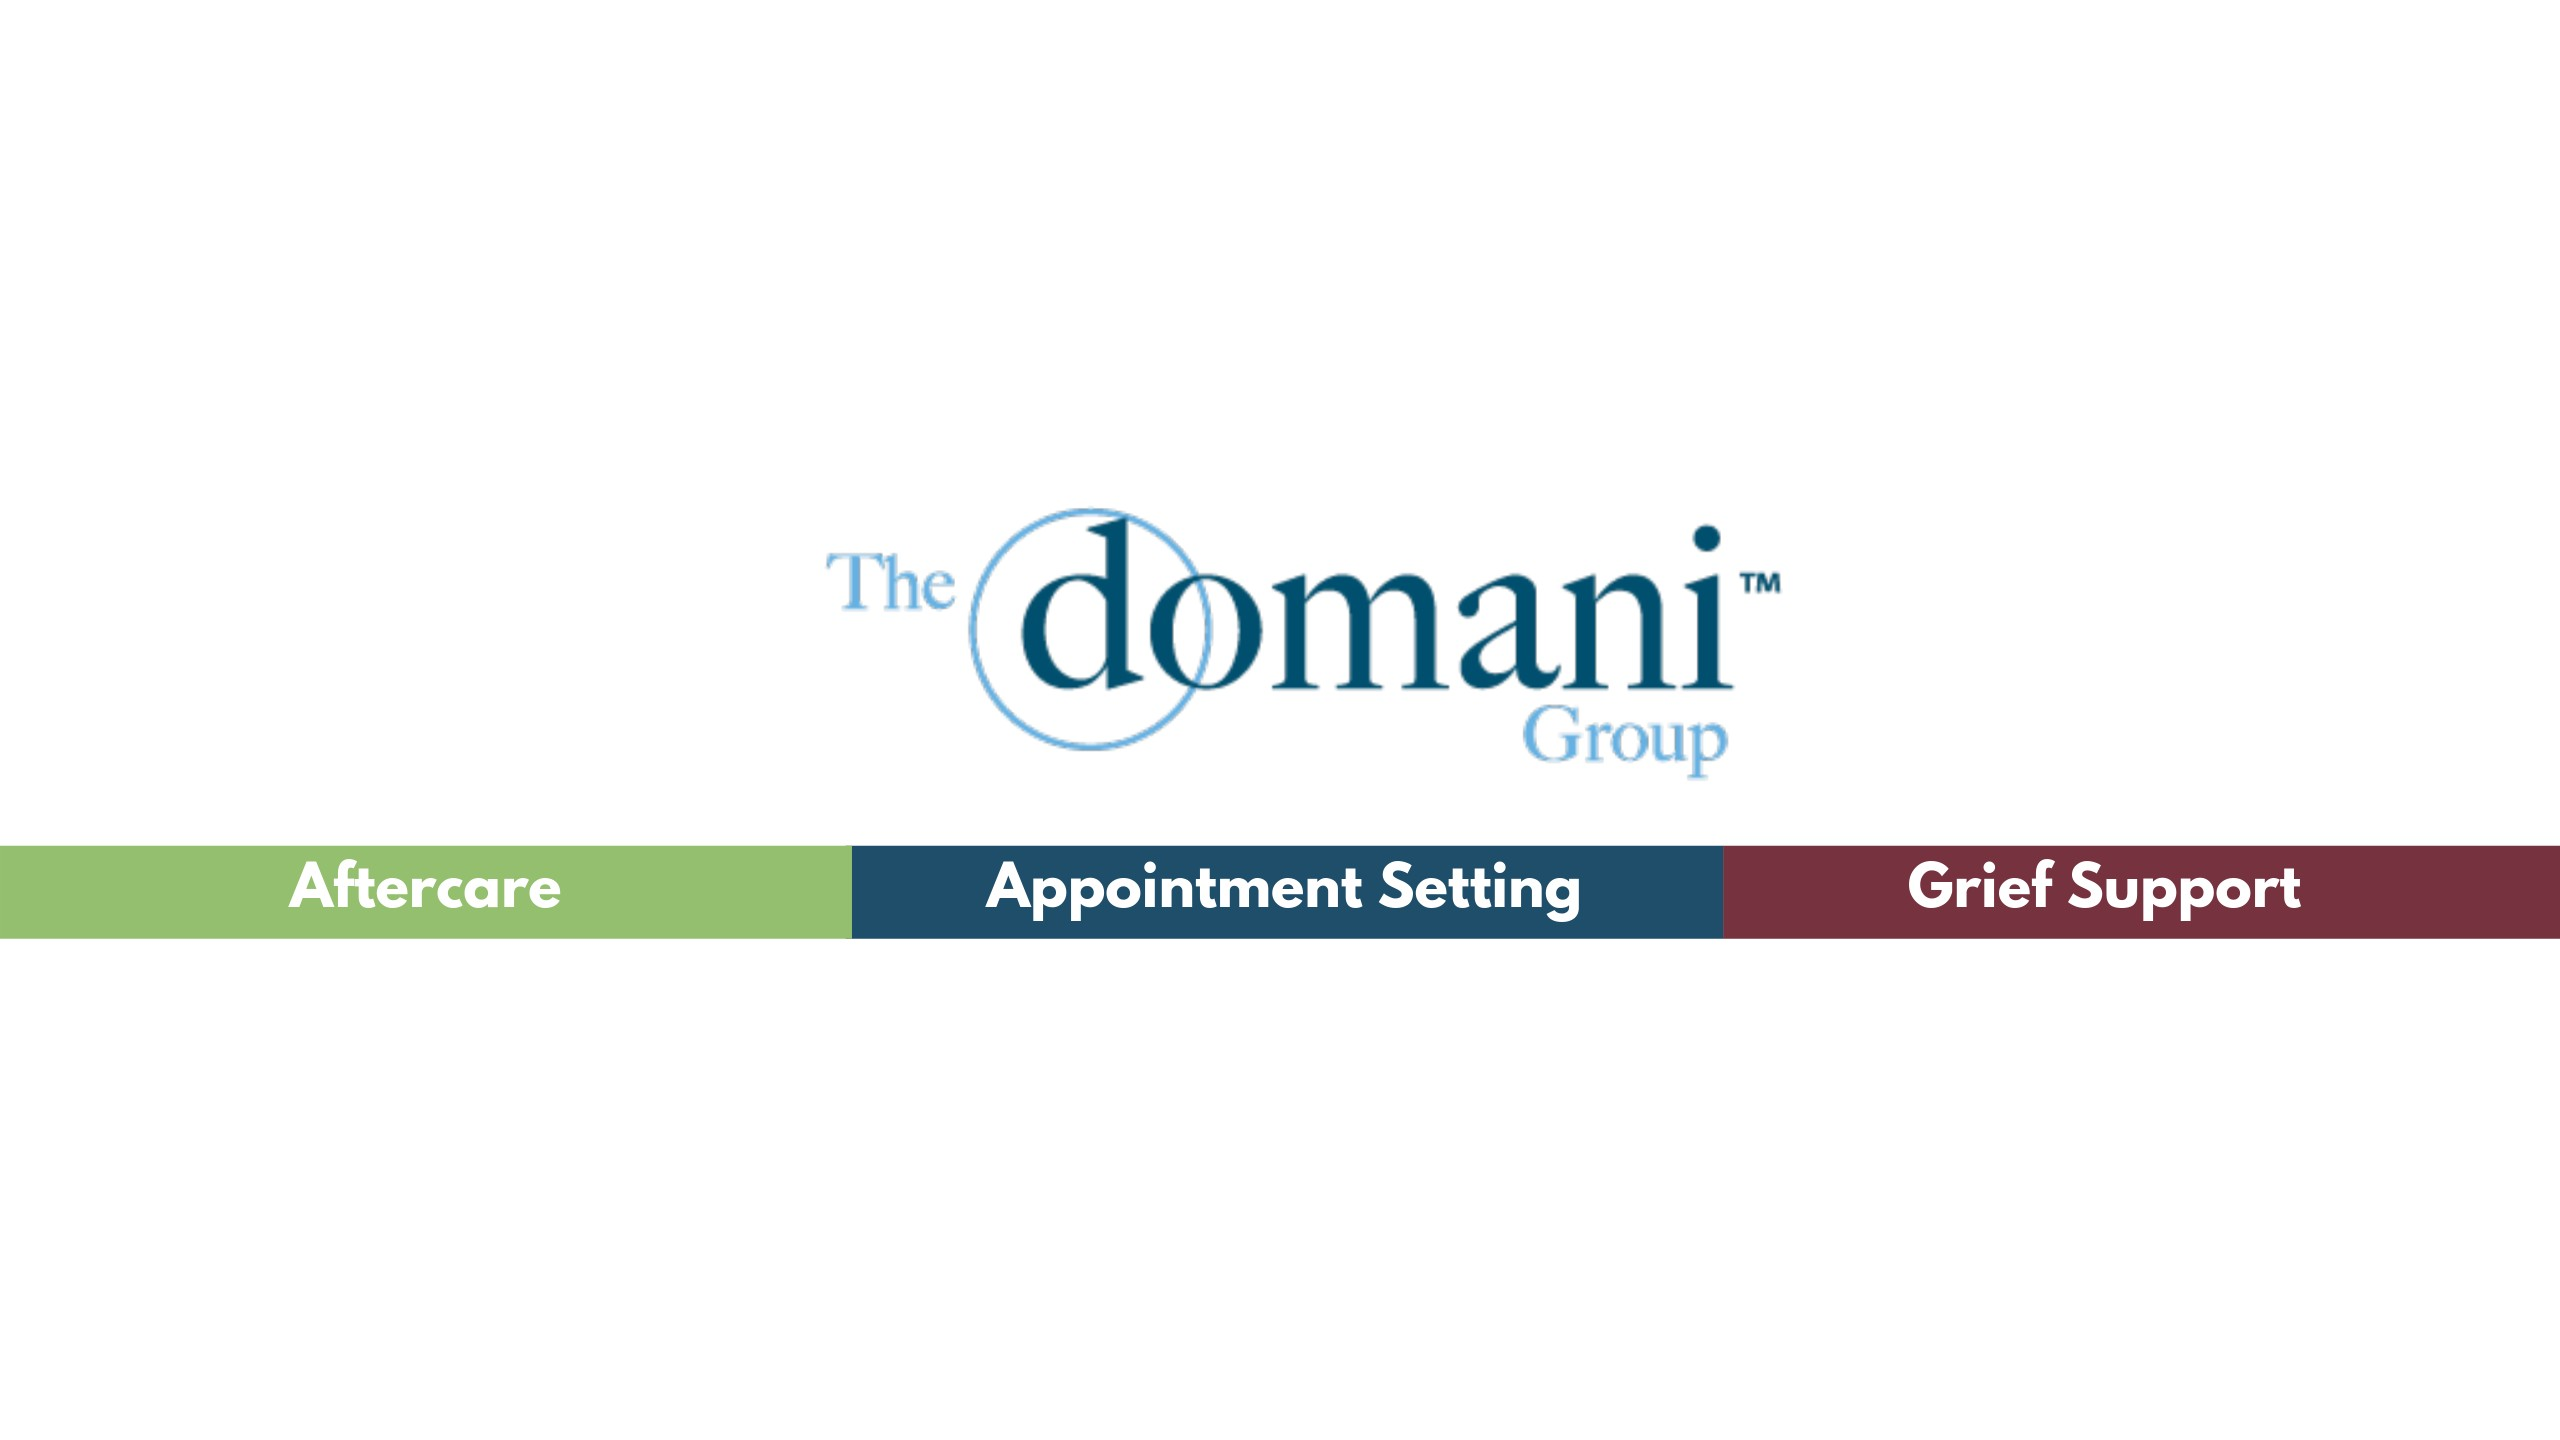 The Domani Group